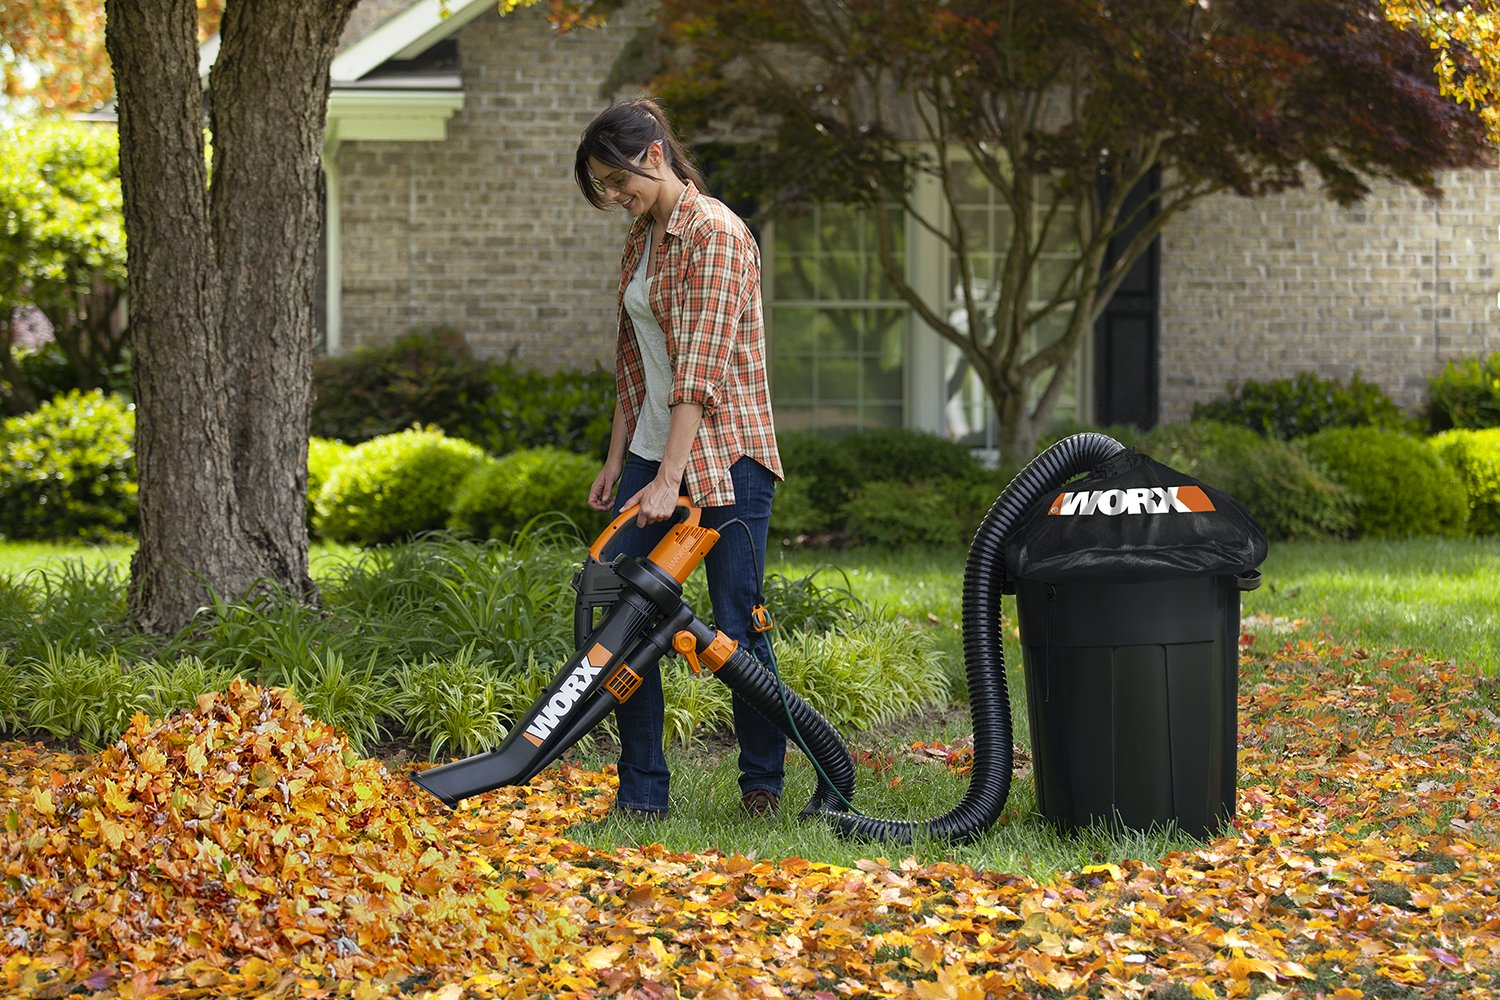 WORX WA4054.2 LeafPro Universal Leaf Collection System for All Major Blower/Vac Brands by WORX